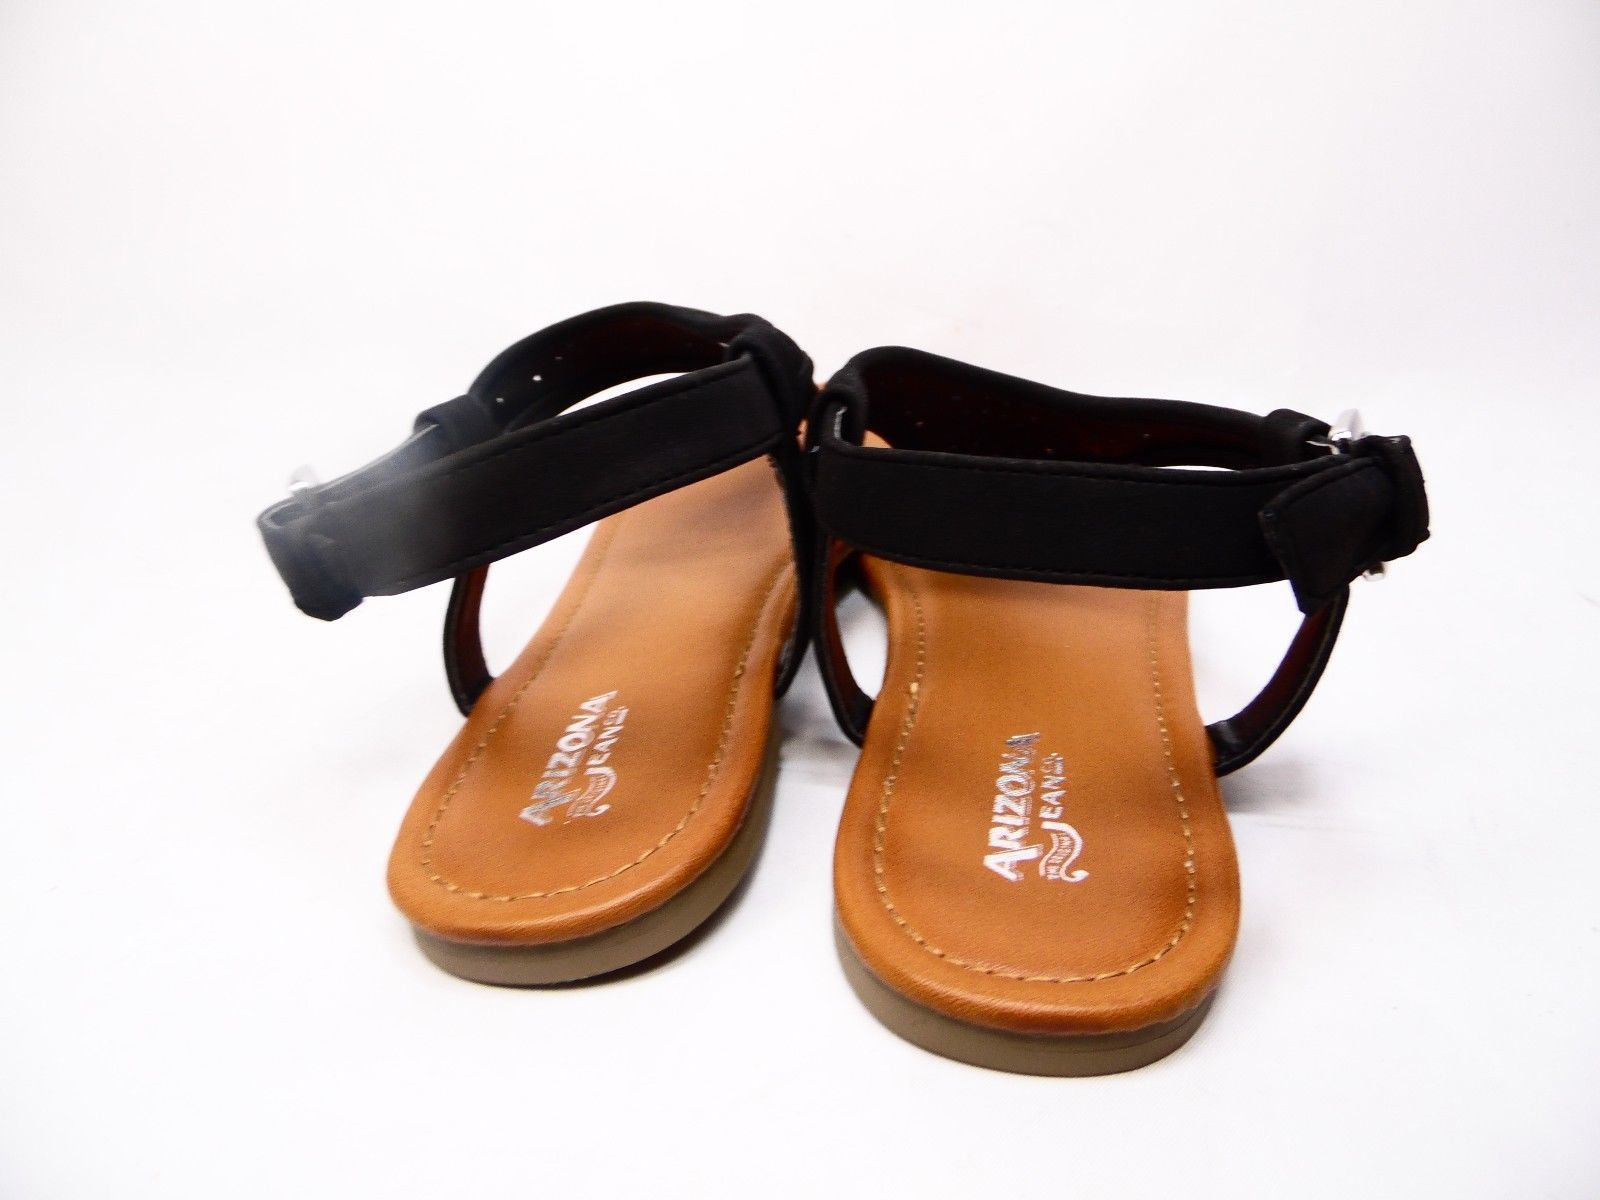 Arizona Sari Womens Flat Sandals Black Size 11M